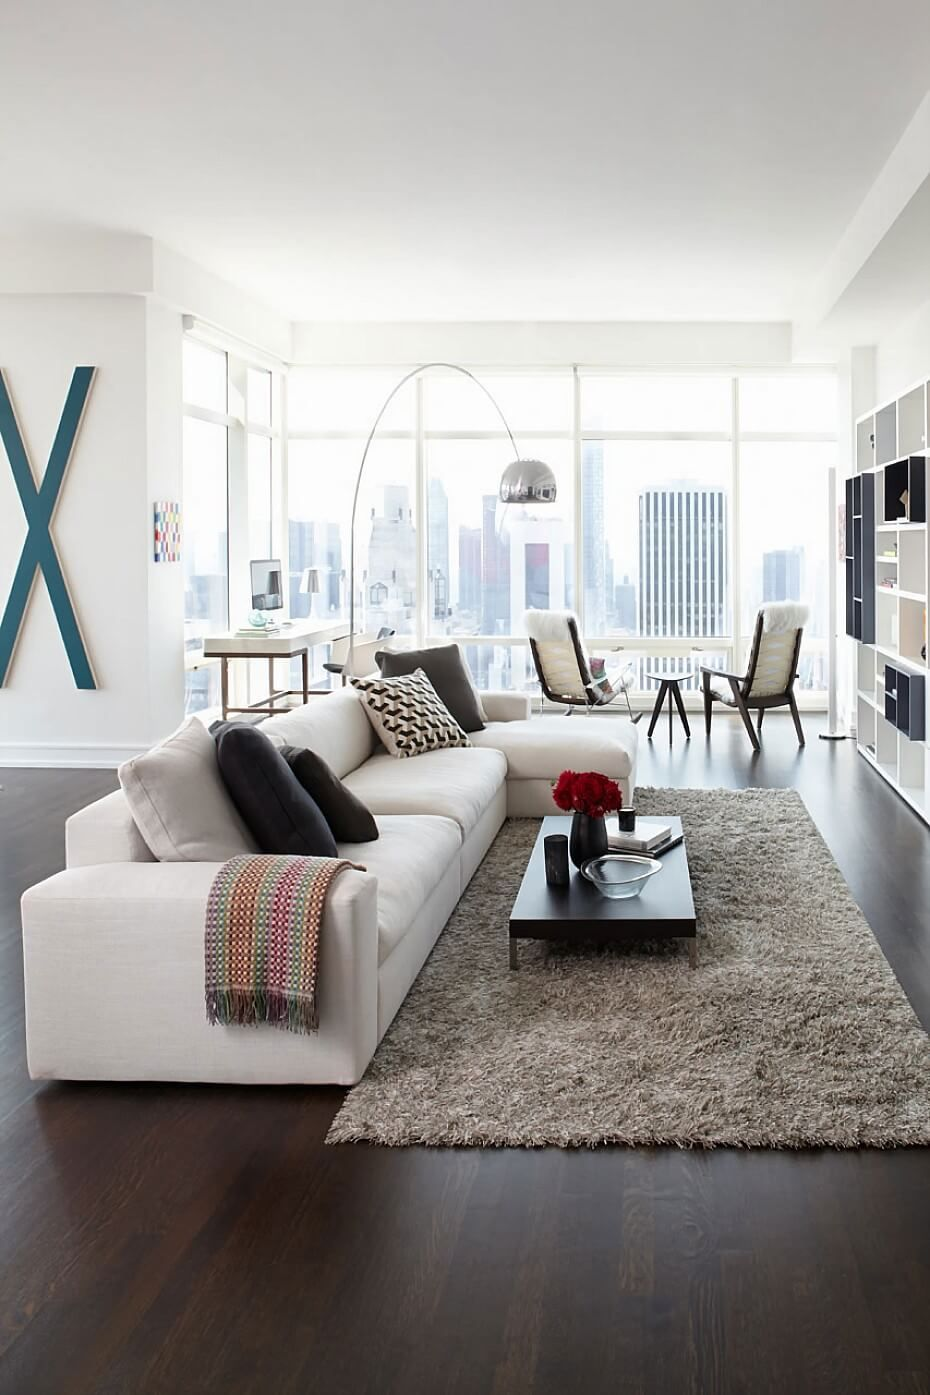 26 Stylish Ways Modern Living Room Decorating Ideas Can Make Your ...